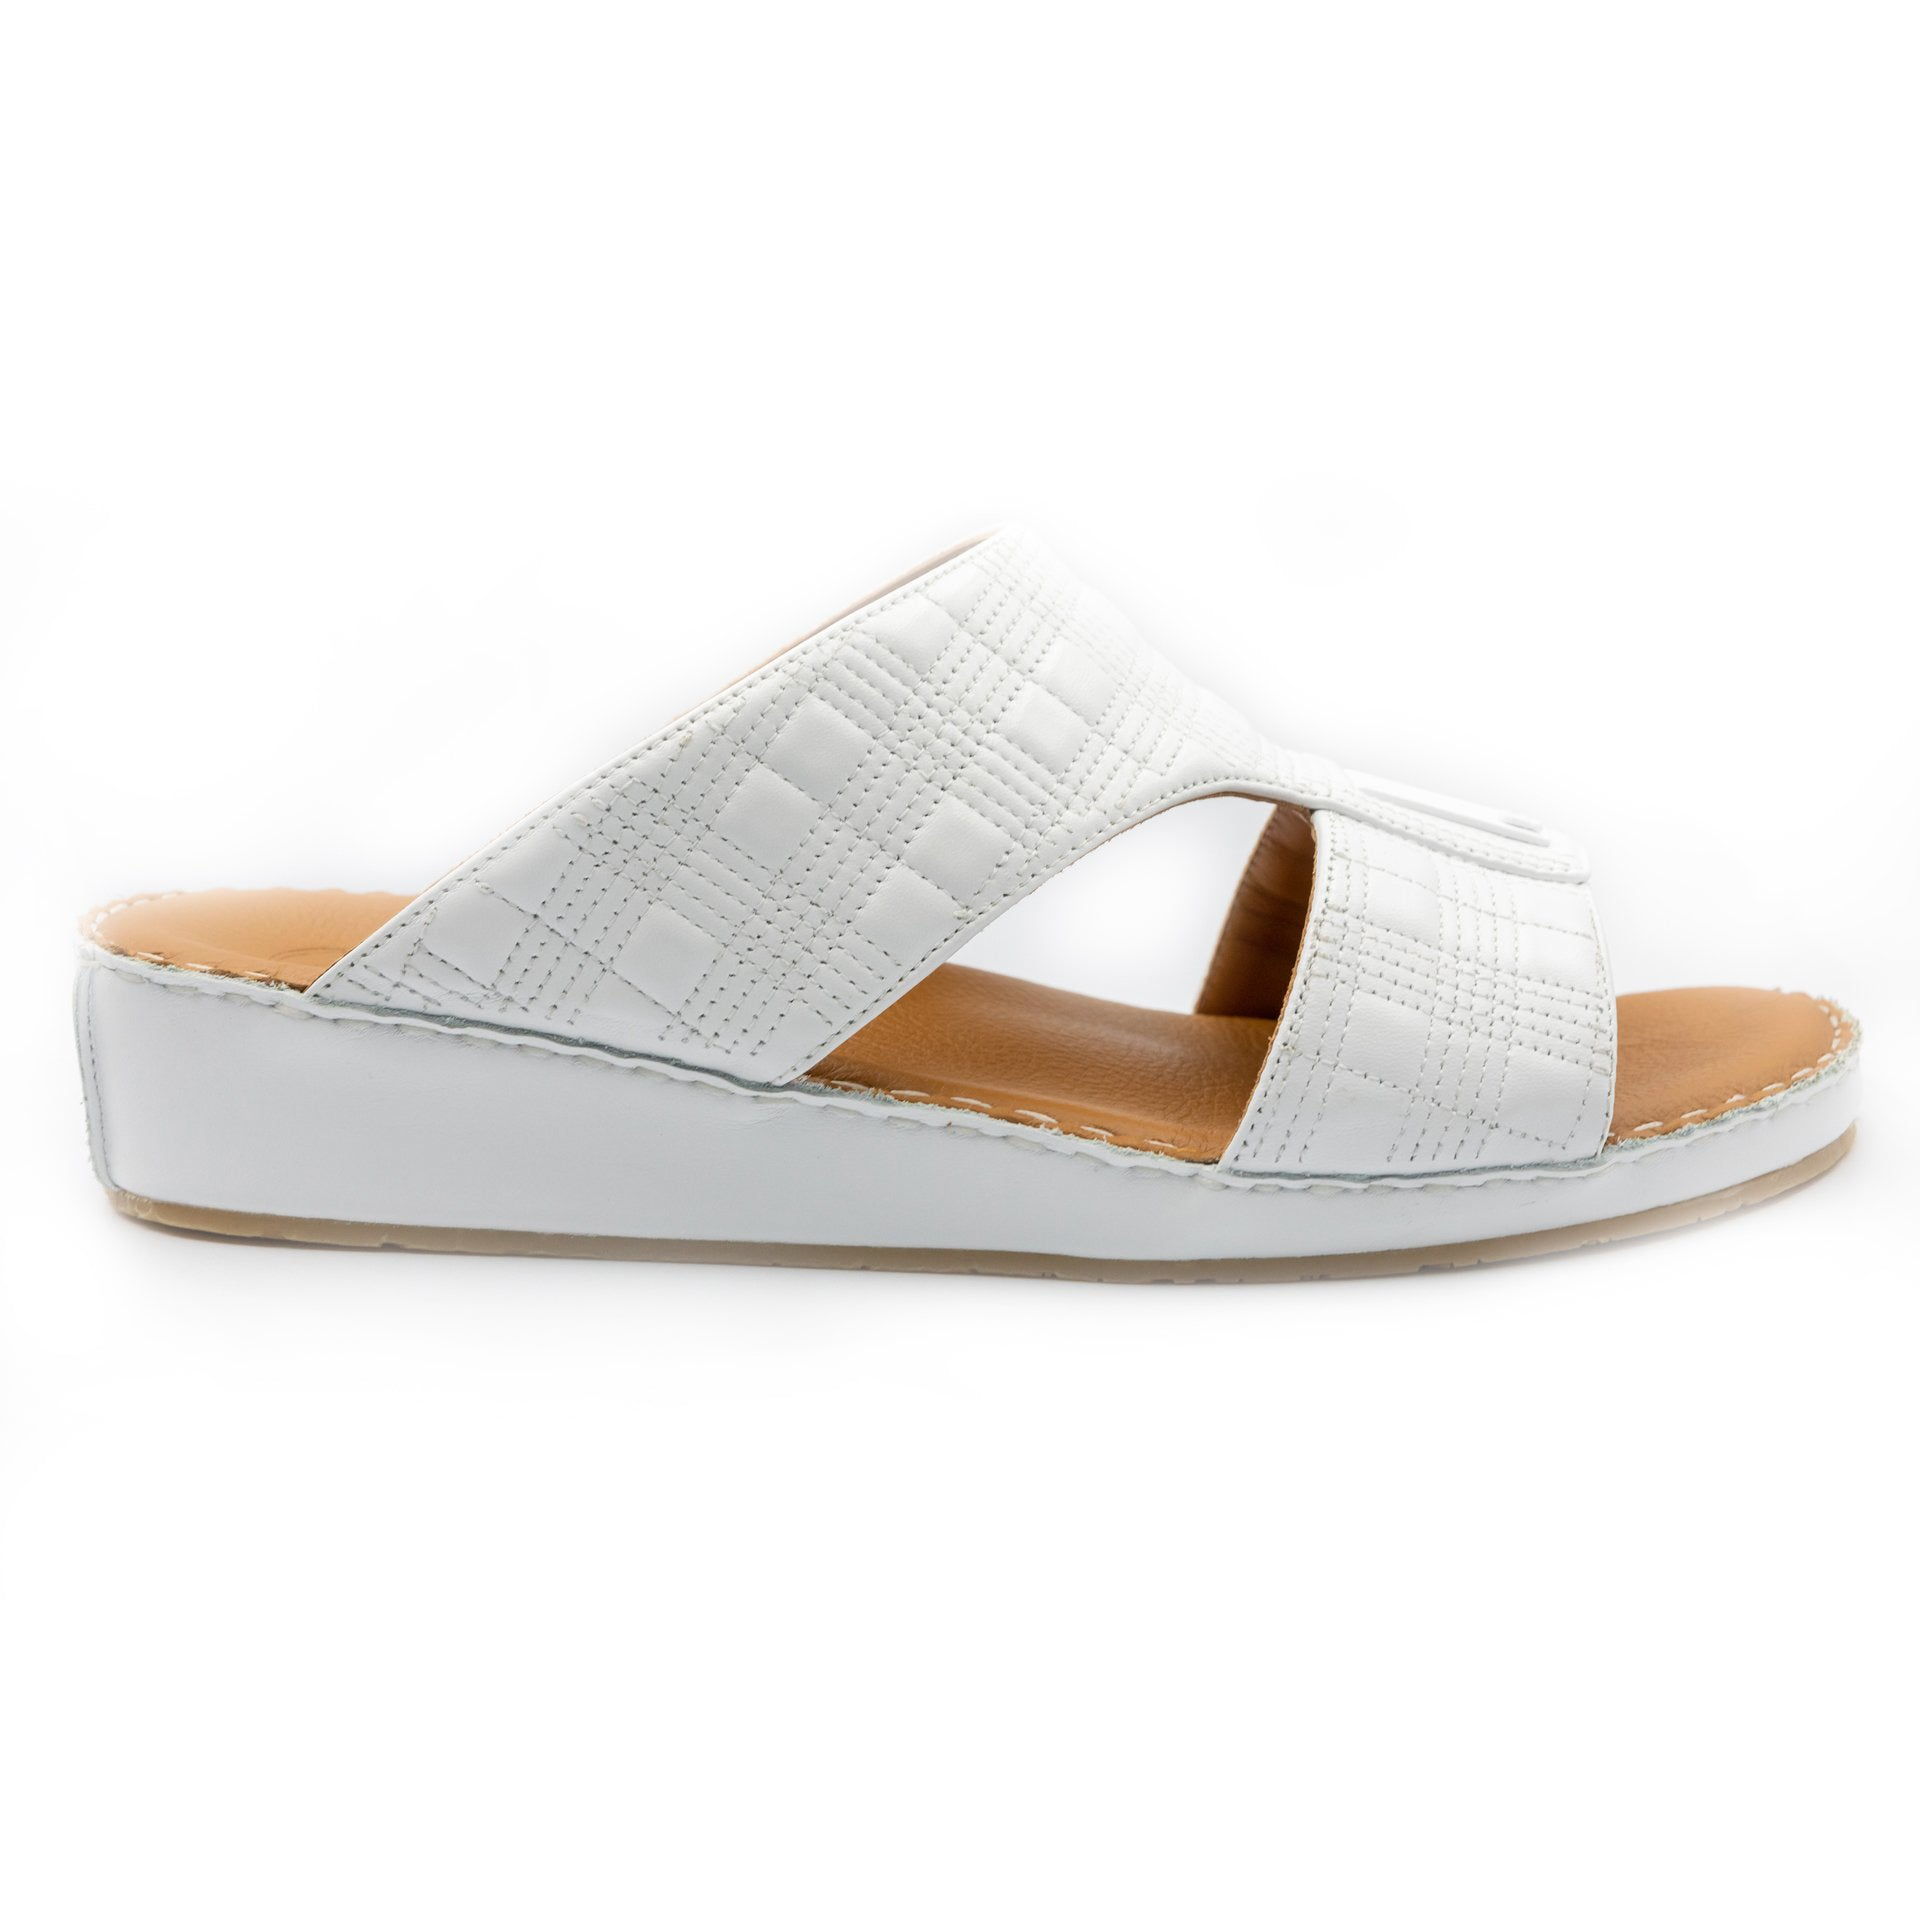 White, square, stiched, Sandals, Arabic, Sandal, Ramadan, Collection, Accessories